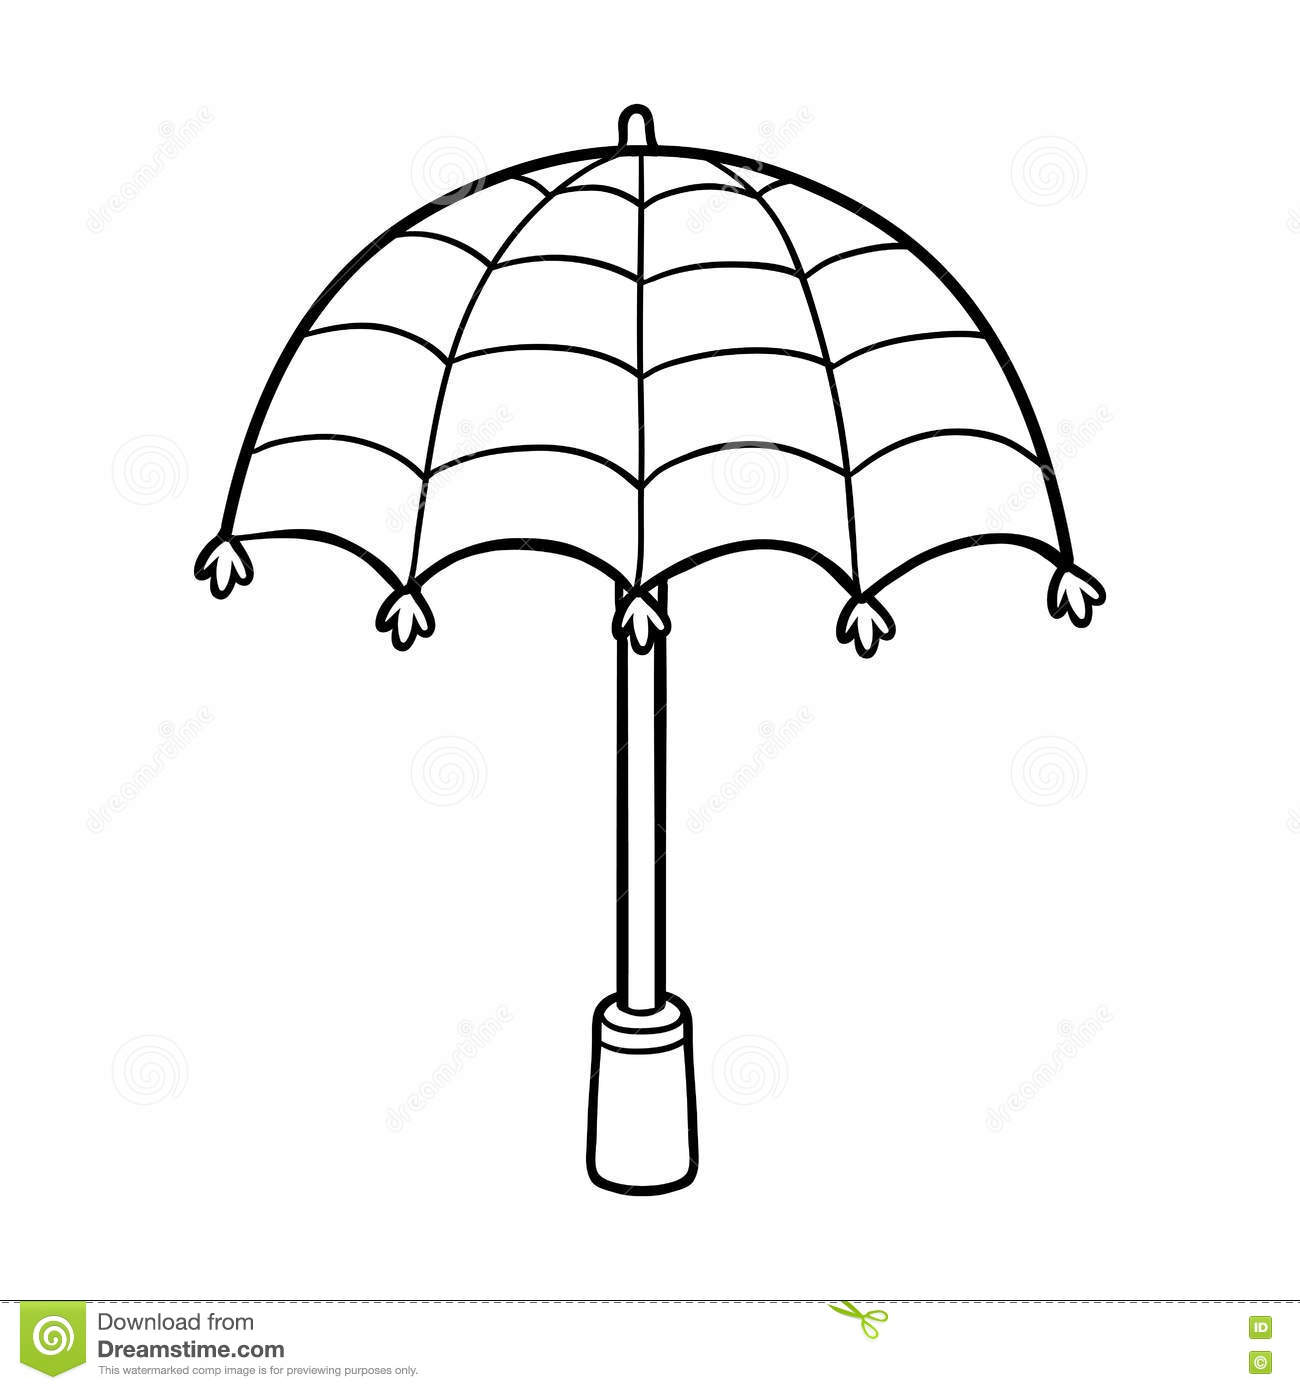 Coloring Book For Children Umbrella Royalty Free Stock Image